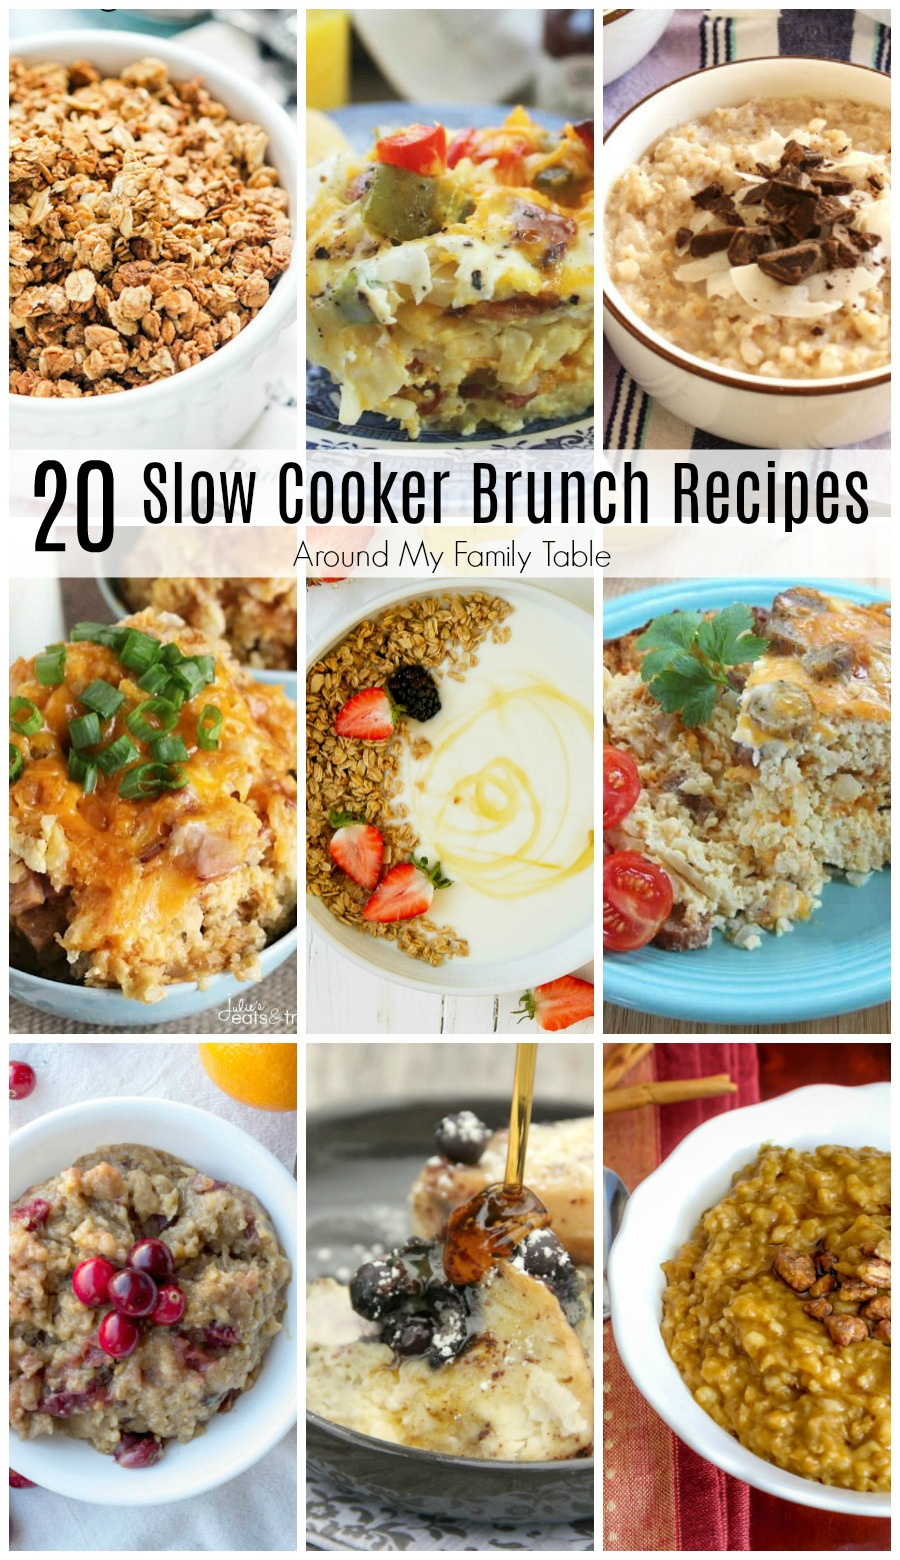 Slow cooker brunch recipesare the perfect thing to make for a weekend brunch! These crock pot recipes are easy to prep and they're absolutely delicious too!